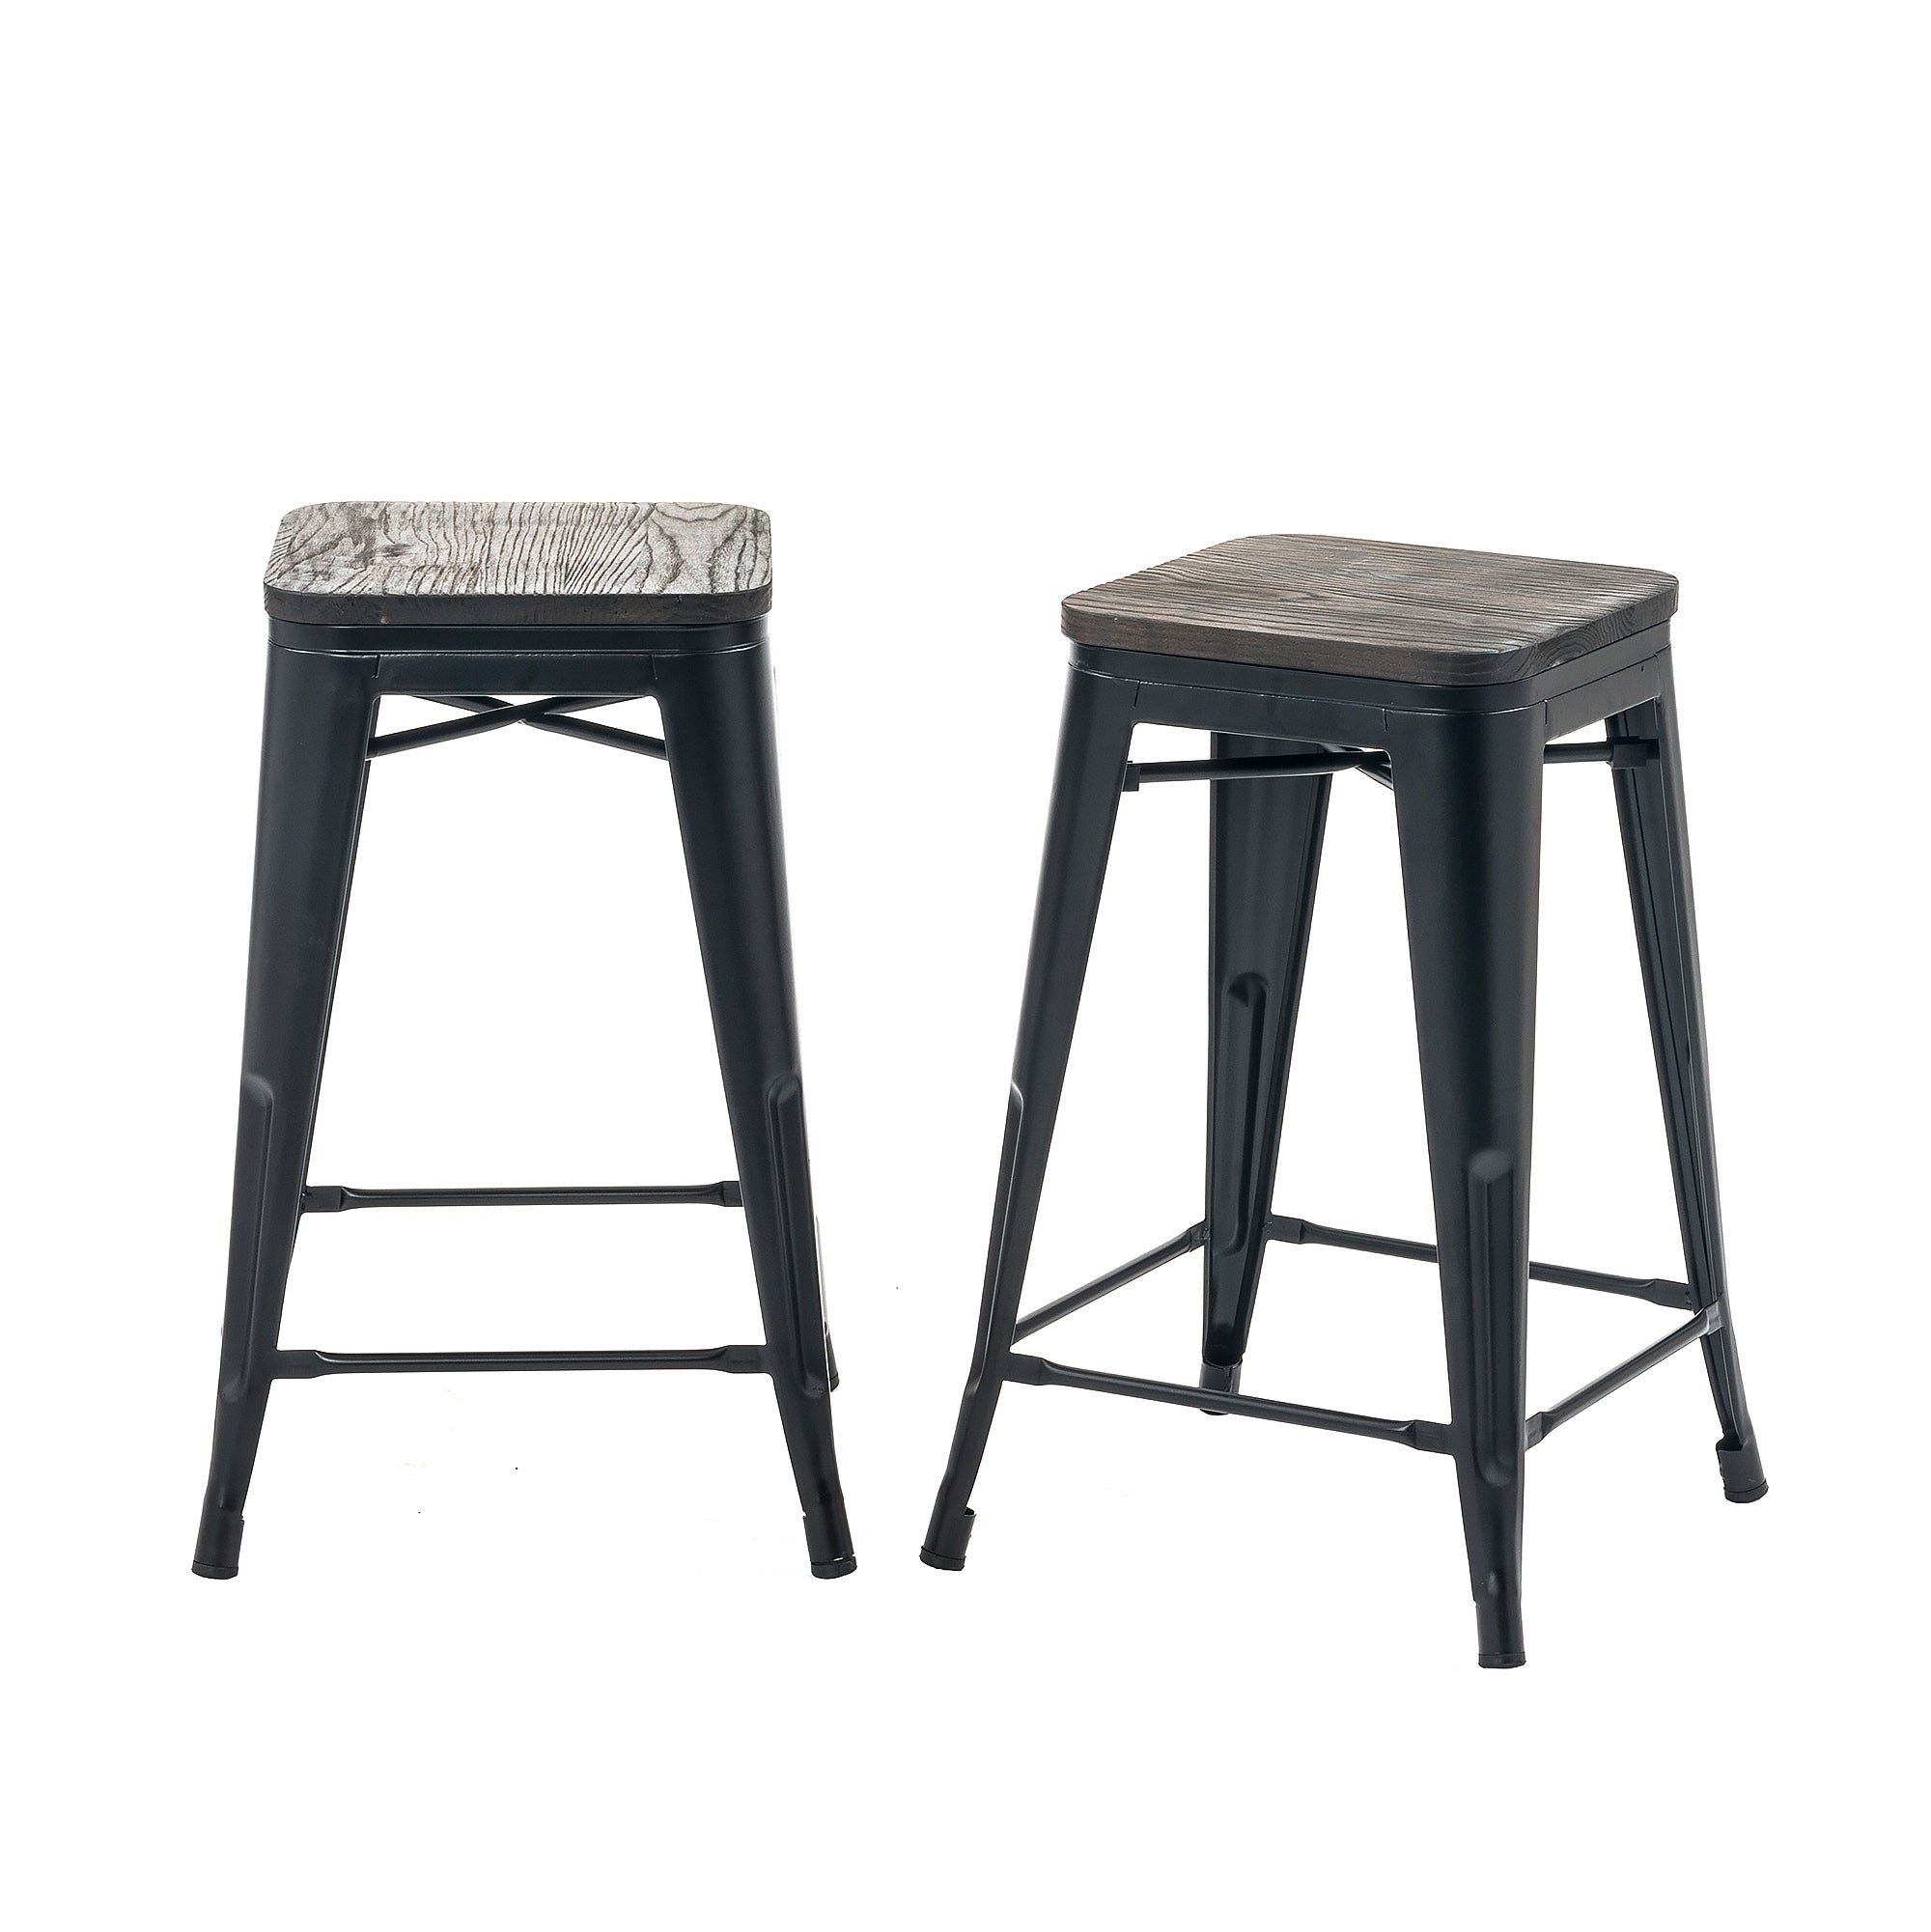 Buschman Set Of 2 Matte Black Wooden Seat 24 Inch Counter Height